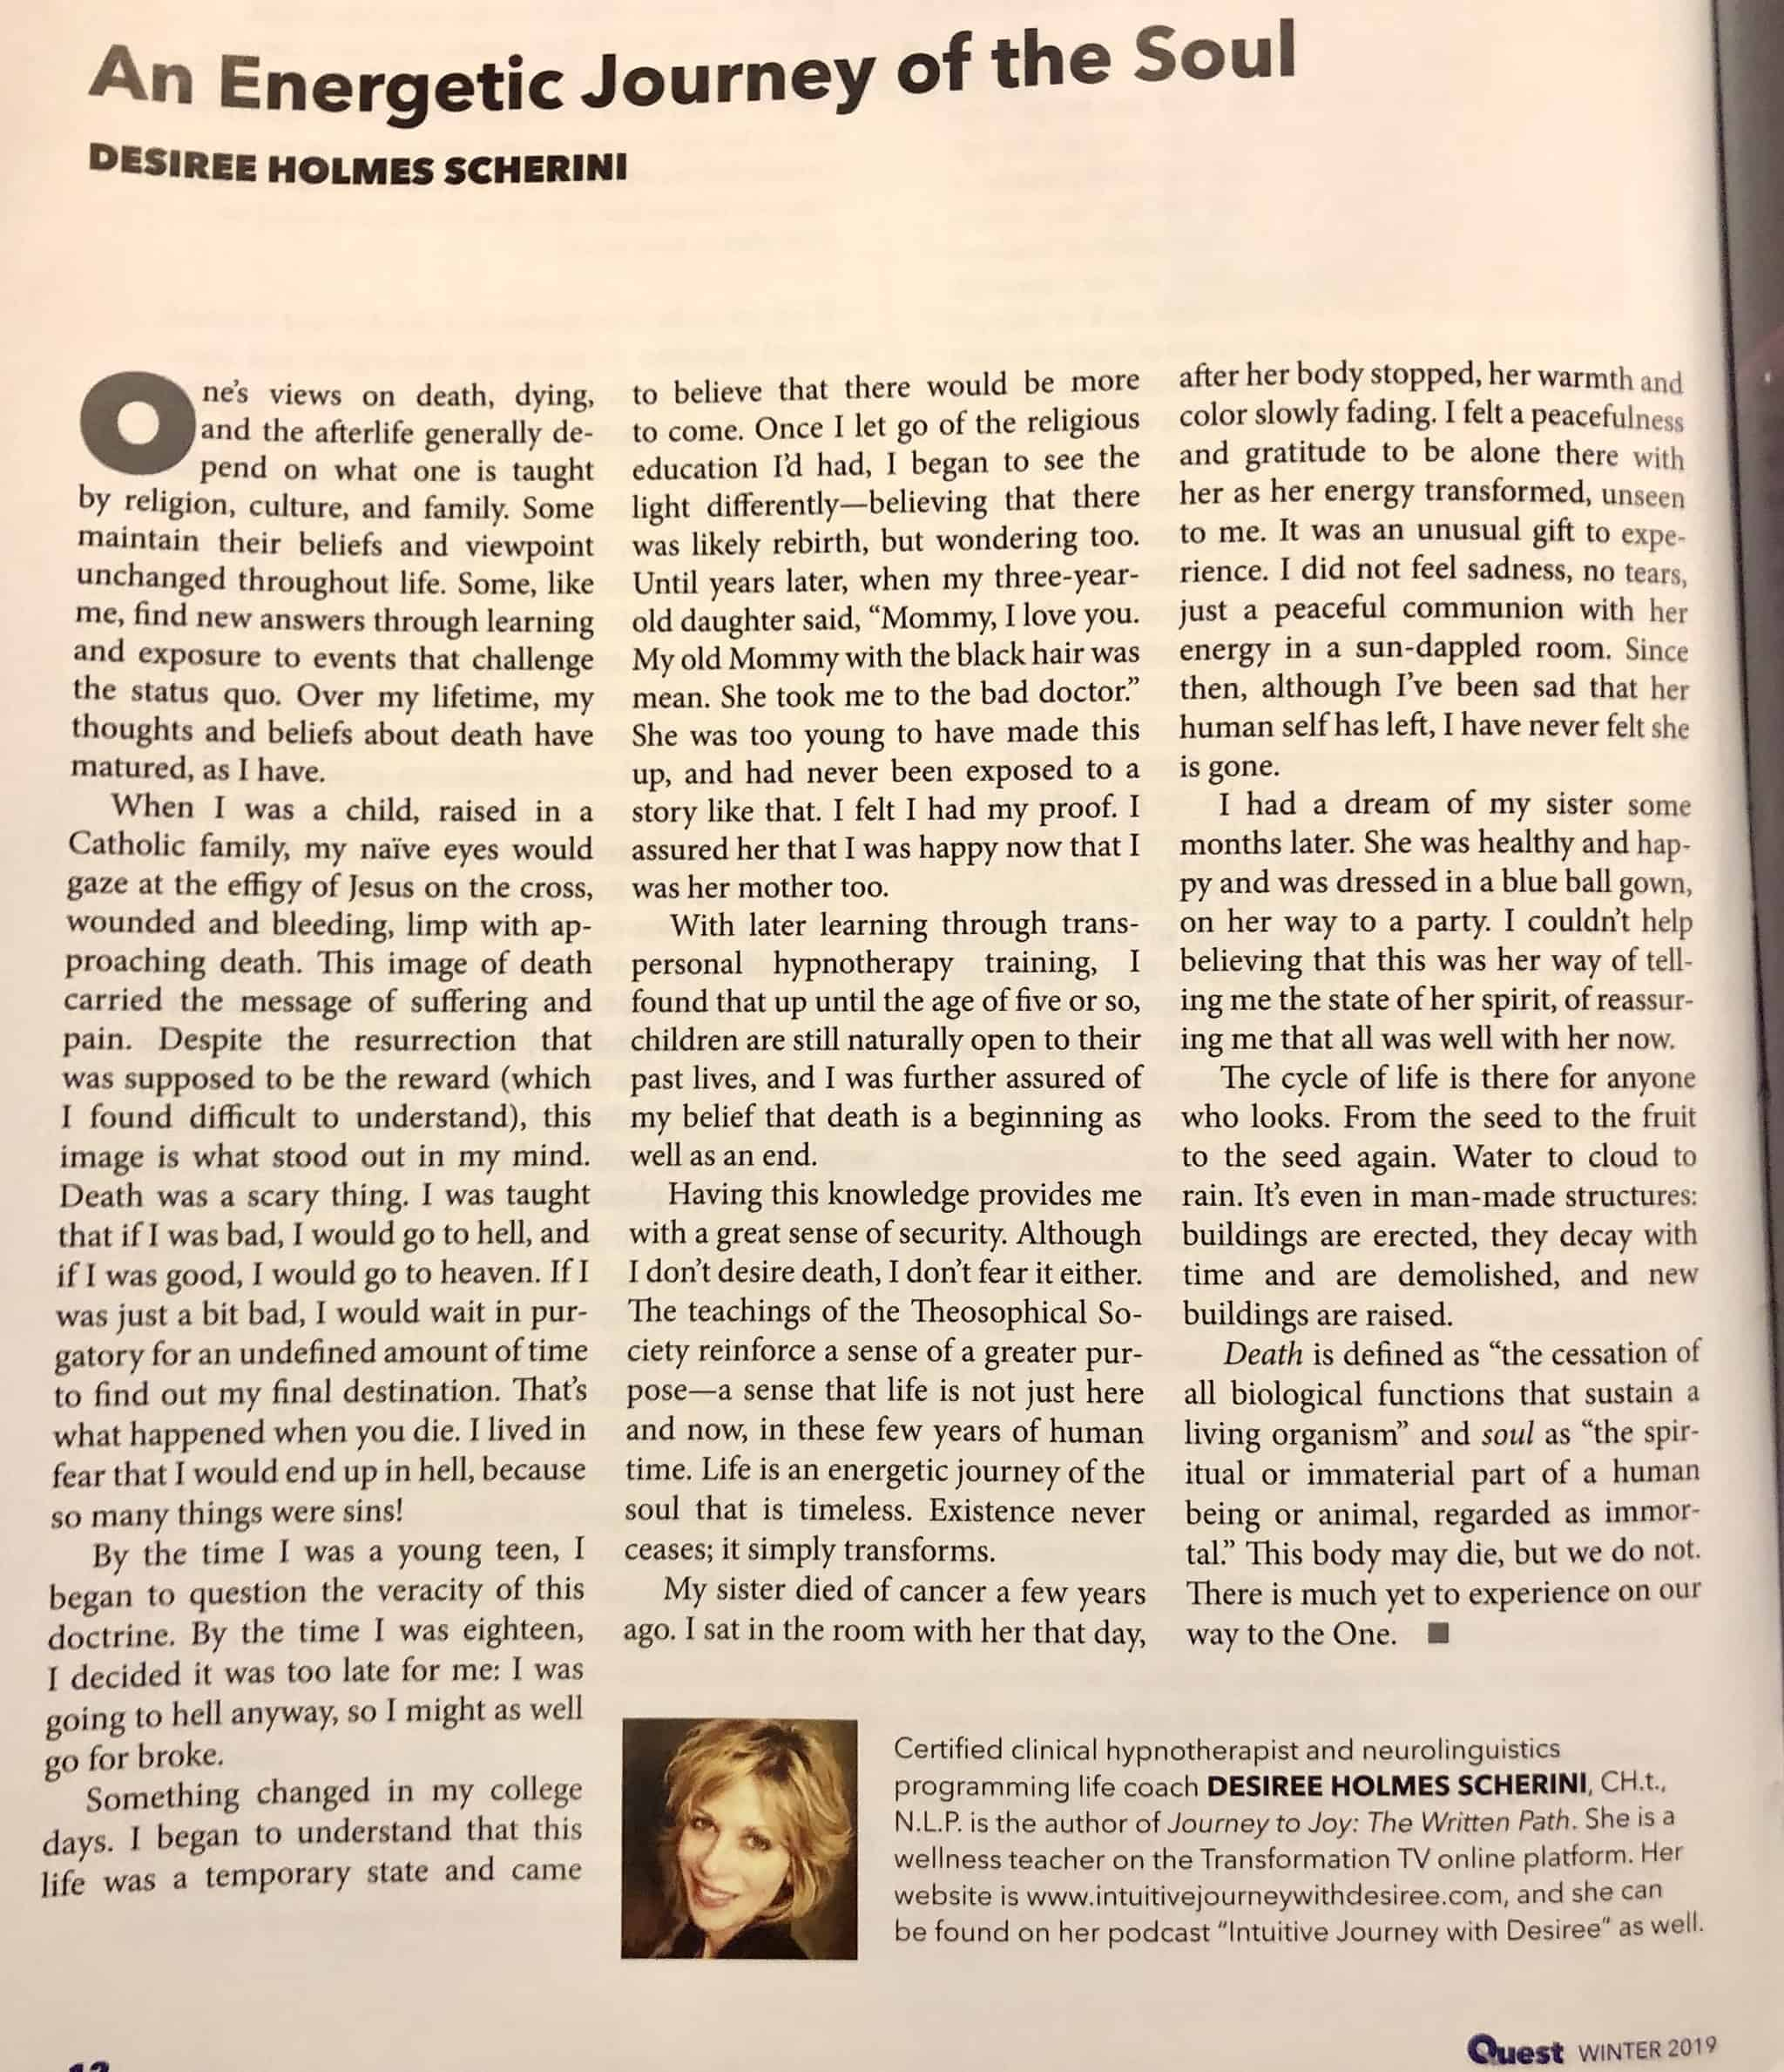 I am honored to have my article published in the Winter 2019 publication of the Theosophical Society